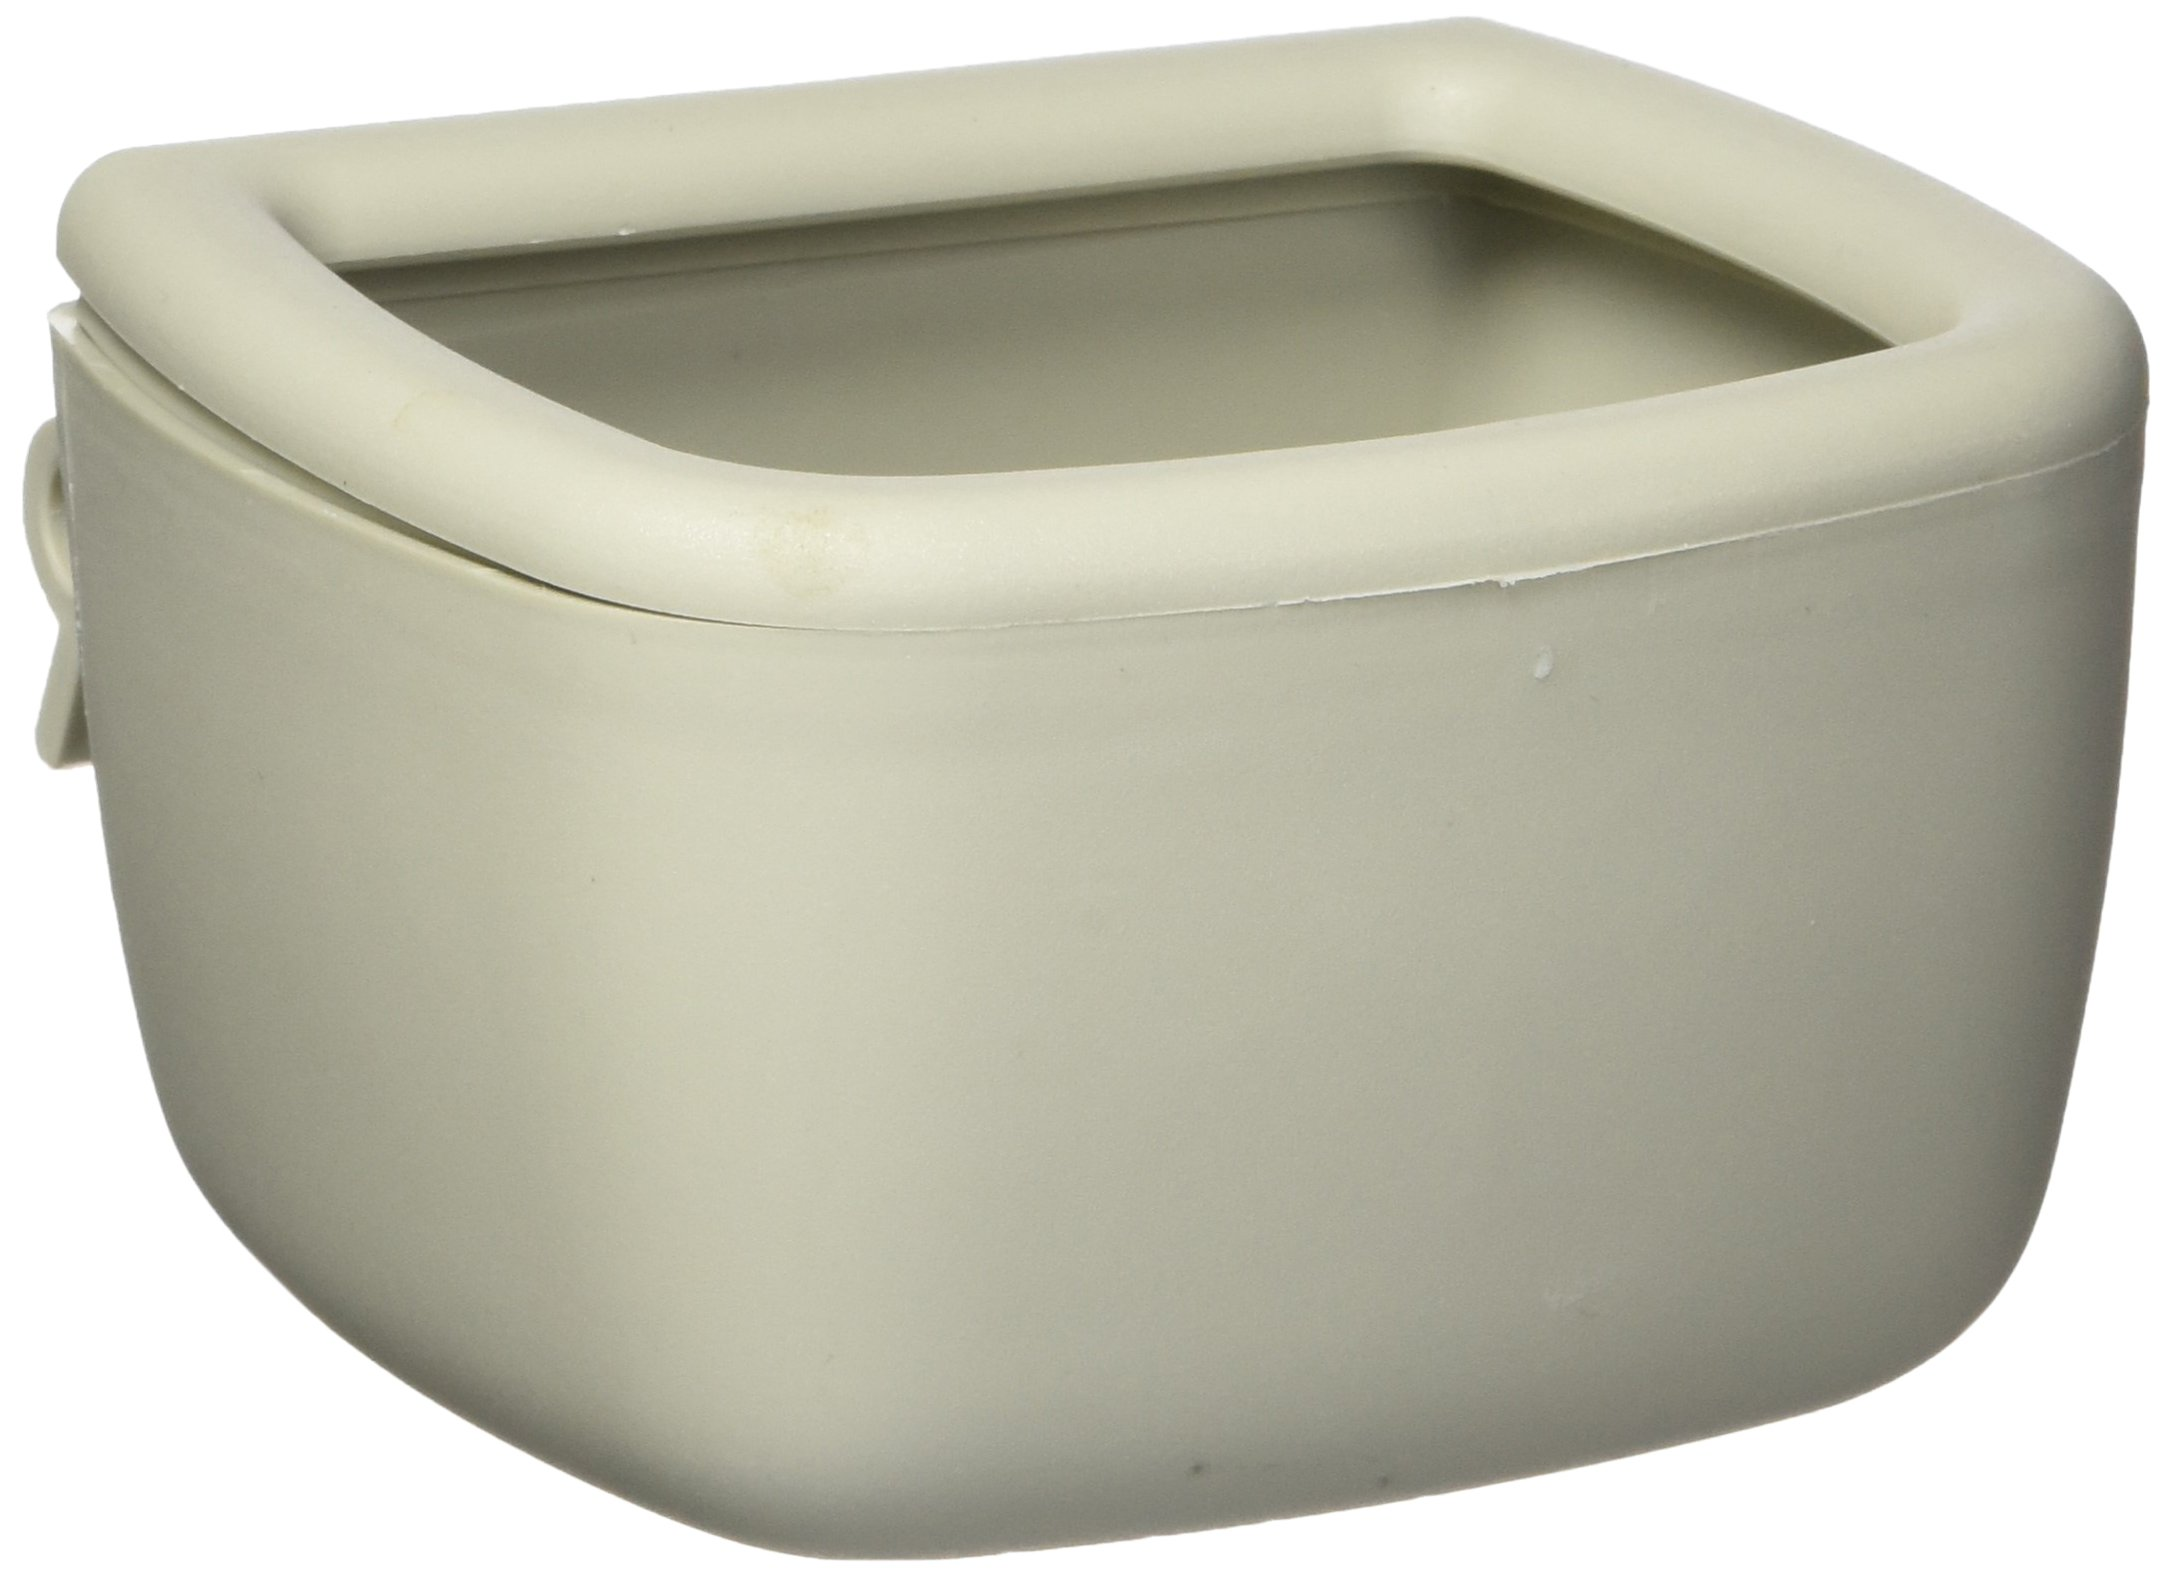 Marshall Snap'N Fit Animal Bowl, Small, Holds 1-Cup